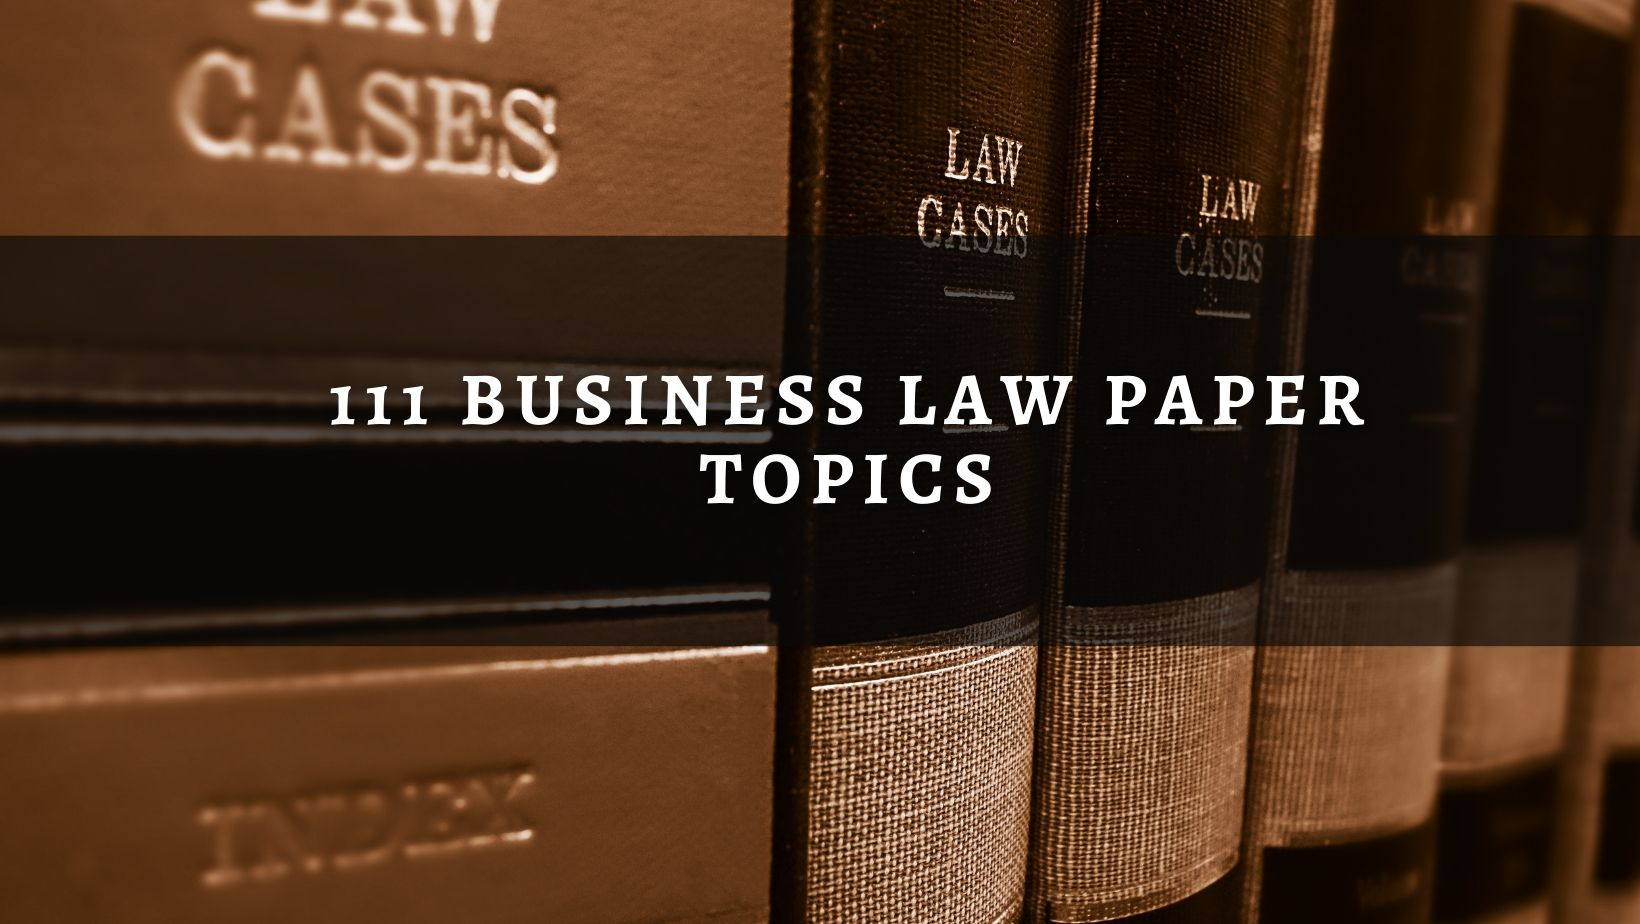 Business Law Paper Topics